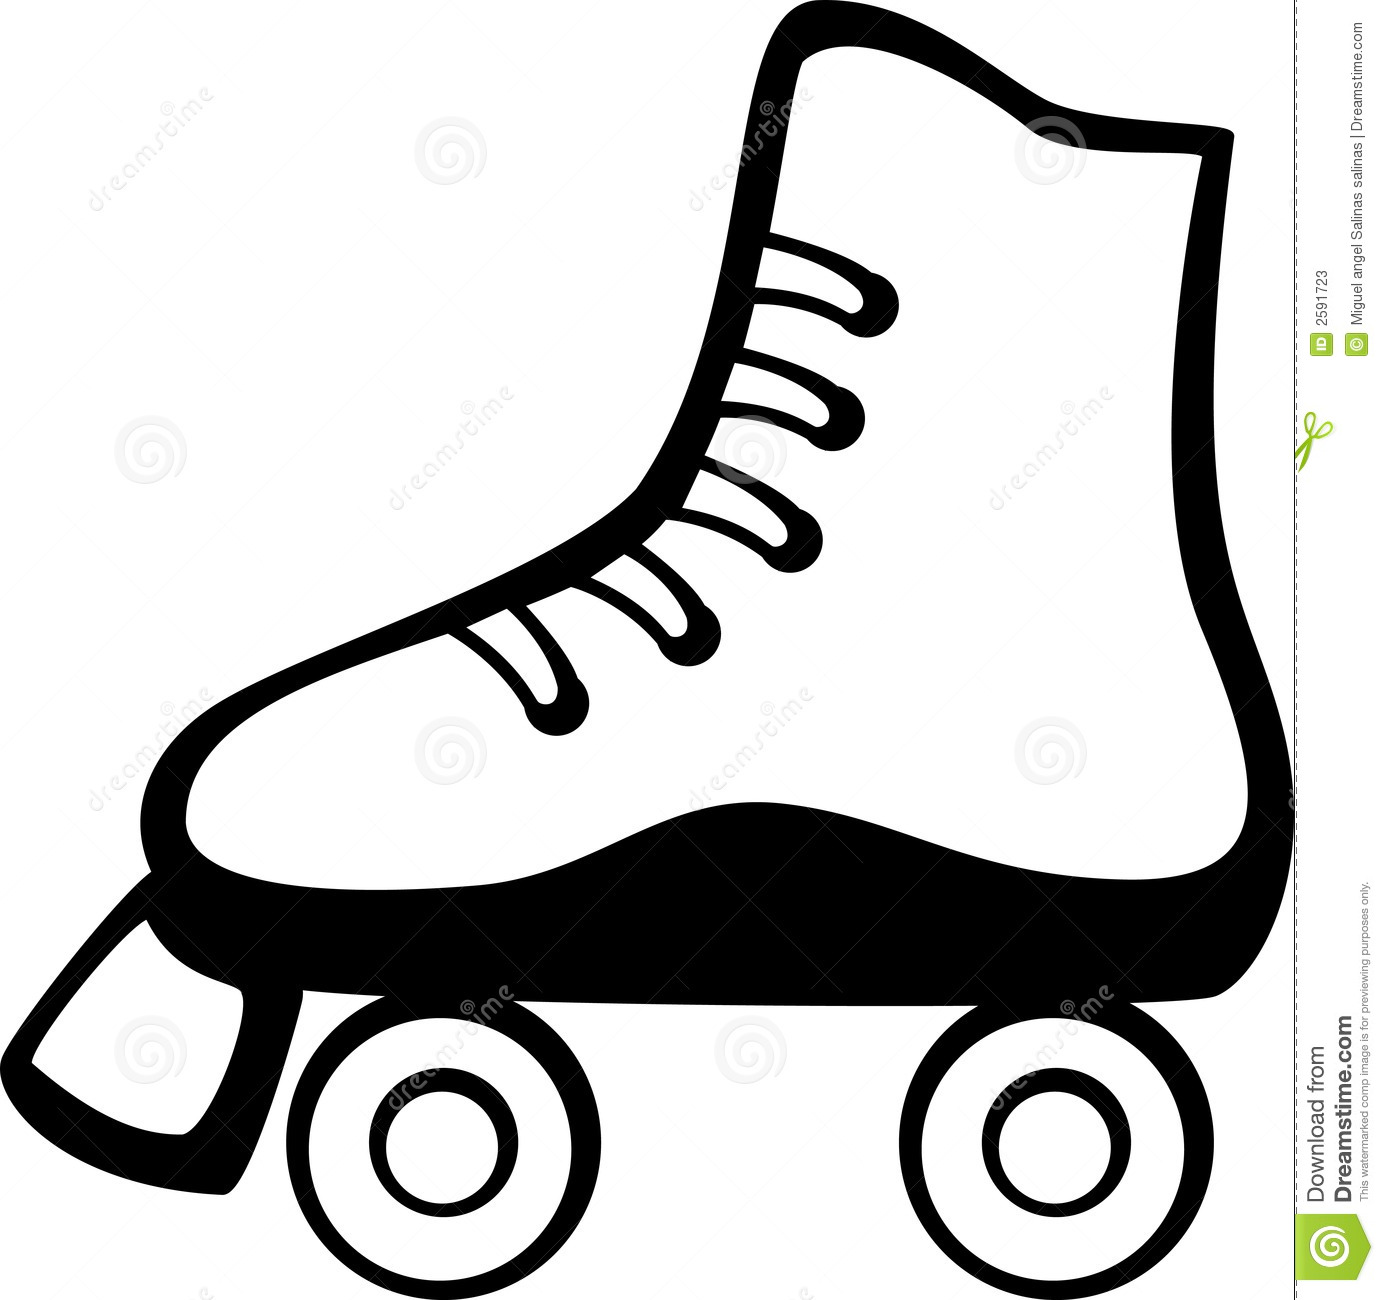 1384x1300 Red Clipart Roller Skate